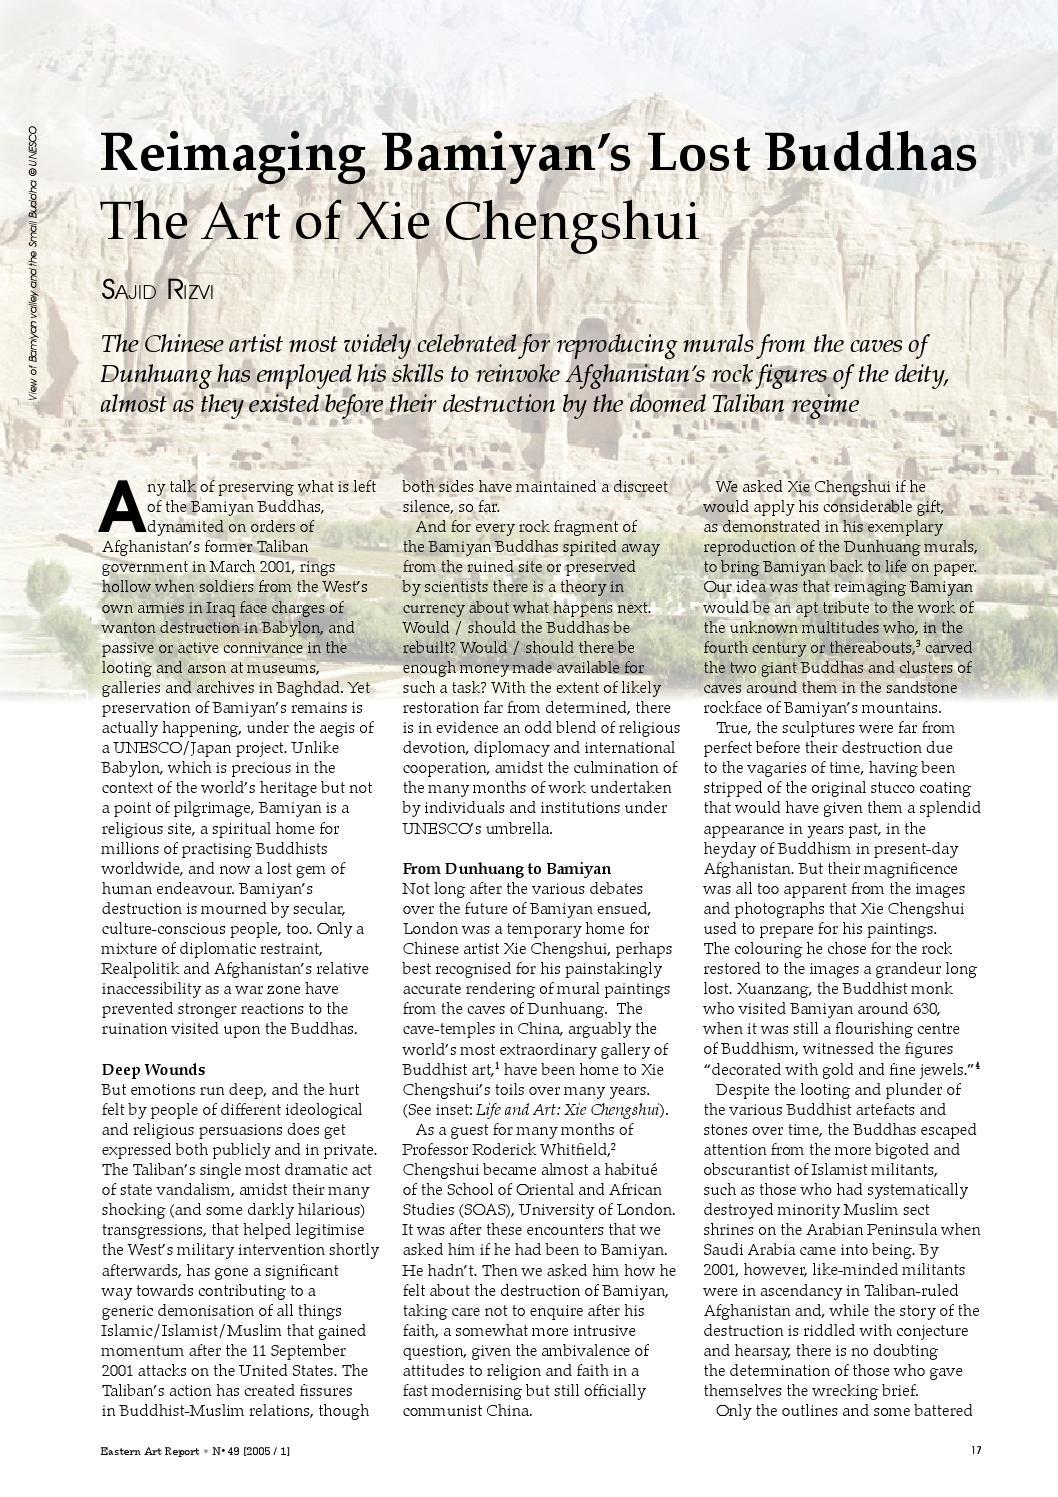 Eastern Art Report Issue 49 Reimaging Bamiyan S Lost